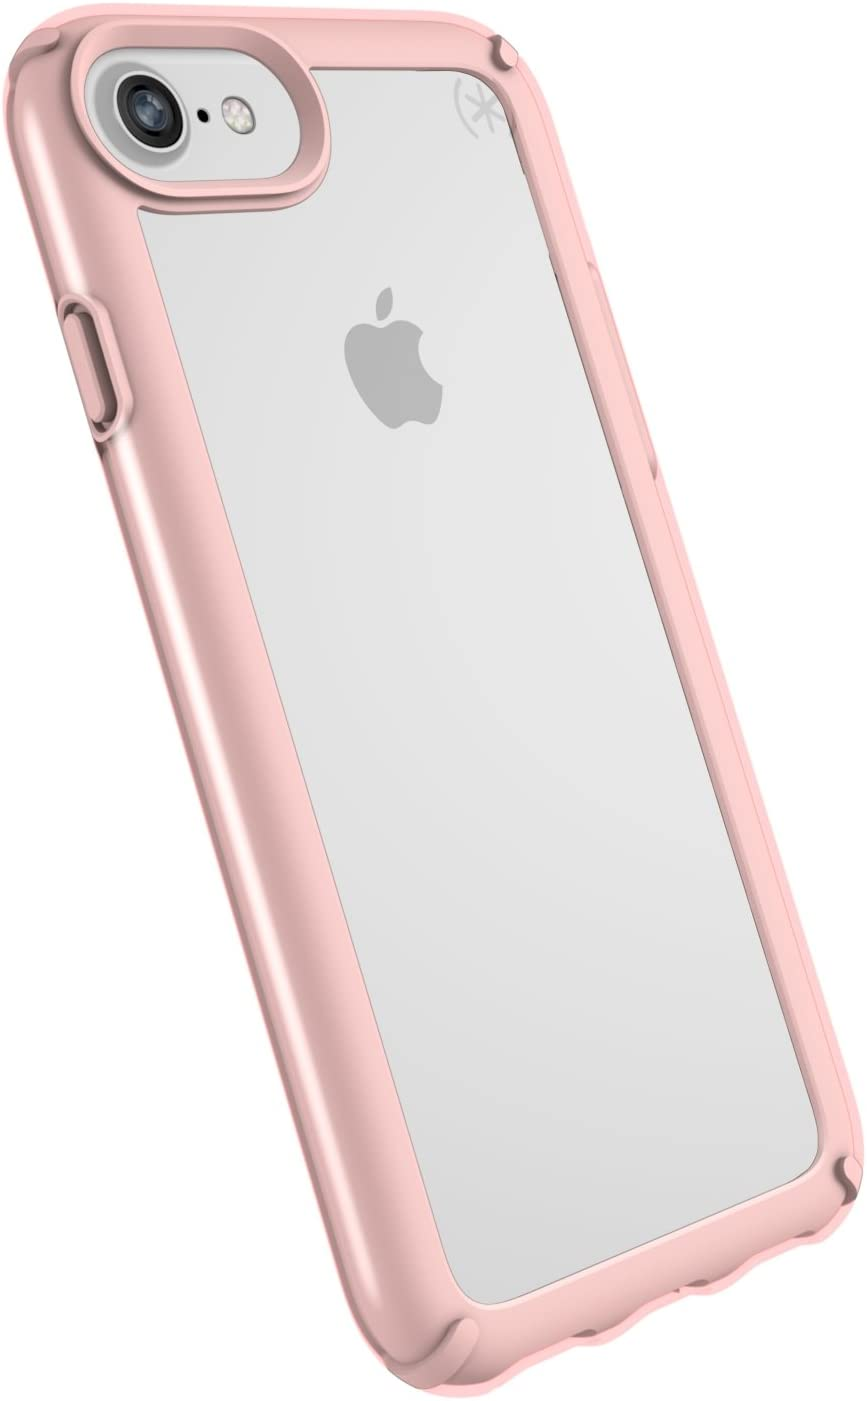 Speck iPhone SE 2020 Case/iPhone 8 Presidio Show Case, Show Off Your Phone and Stay Protected with IMPACTIUM 10-Feet Drop Protection, Clear/Rose Gold